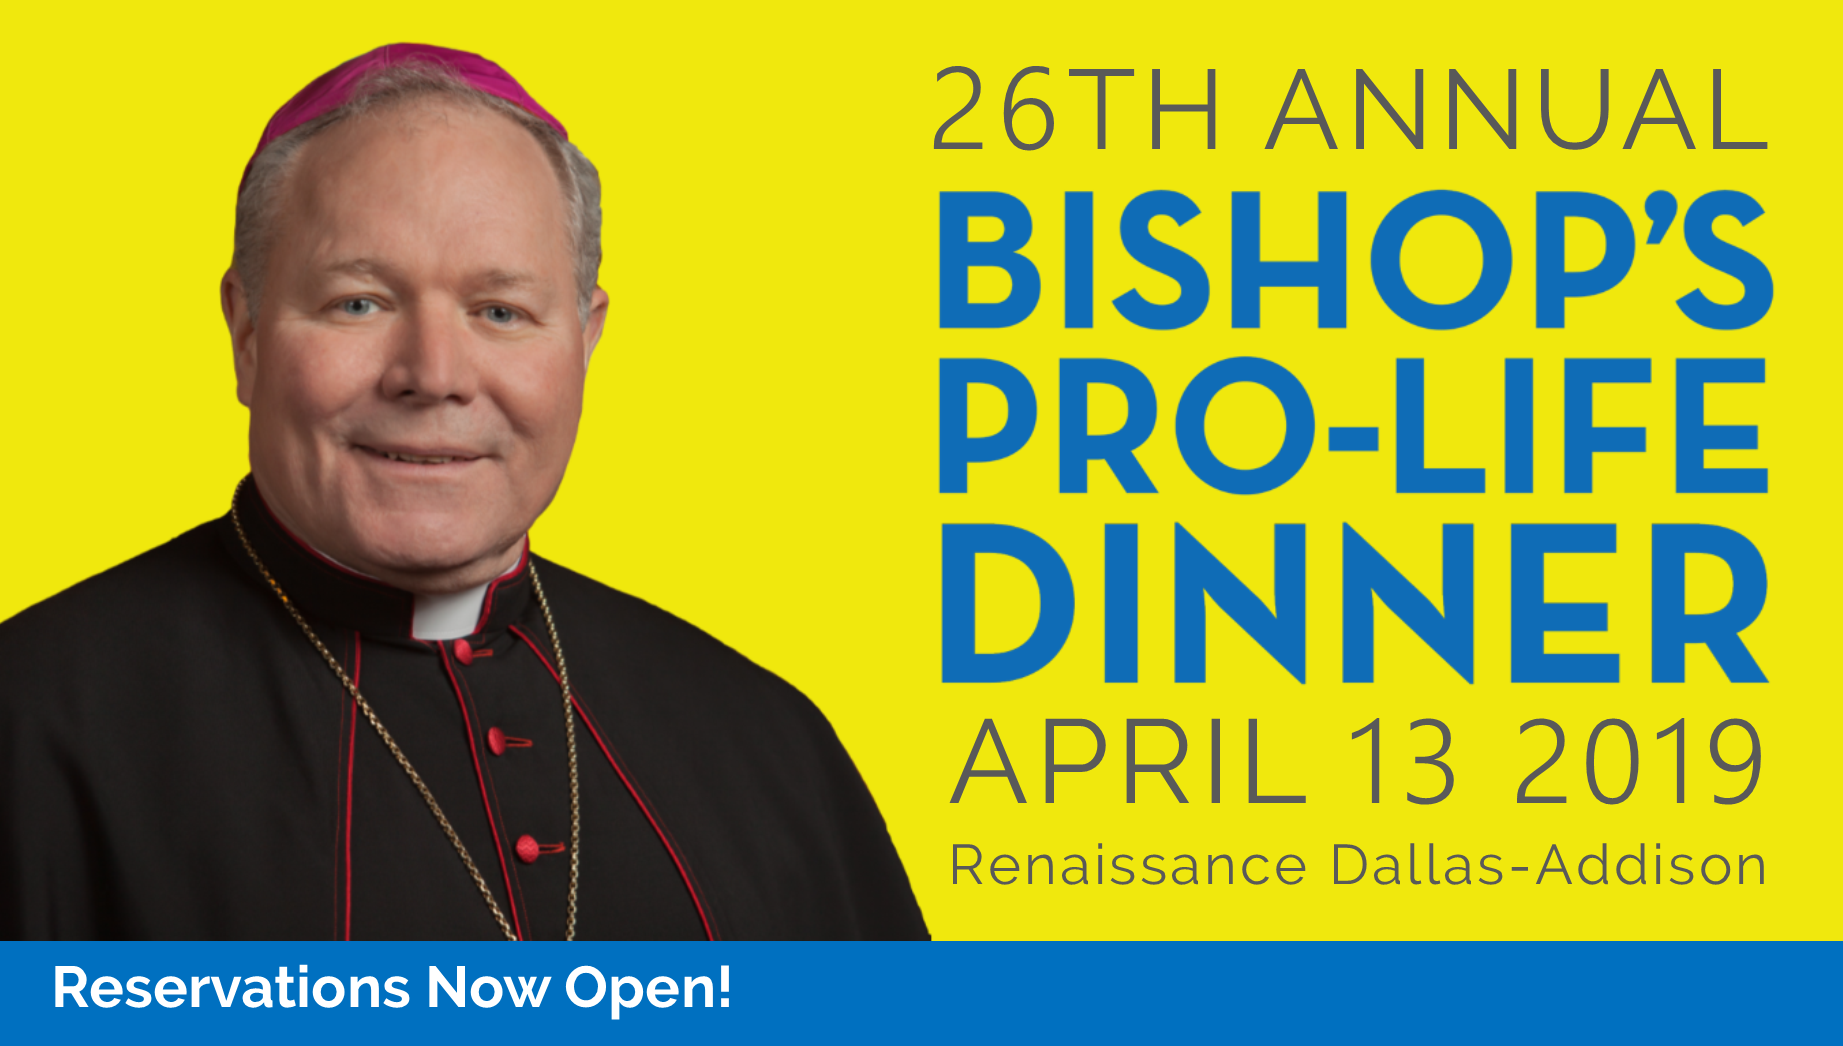 26th Annual Bishop's Pro-Life Dinner